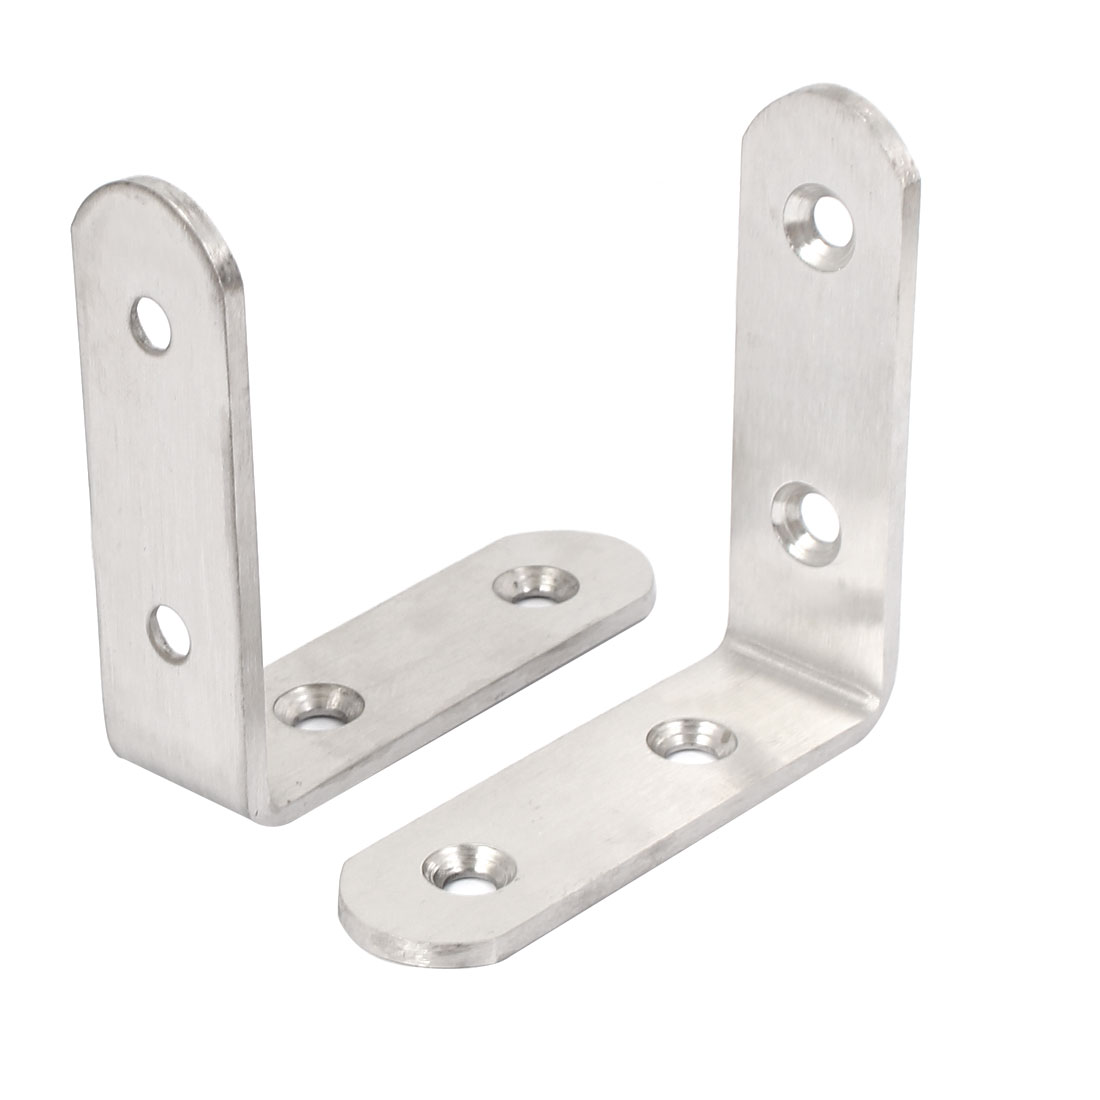 65mmx65mmx3mm L Shape Shelf Bracket Support Angle Brace 2pcs